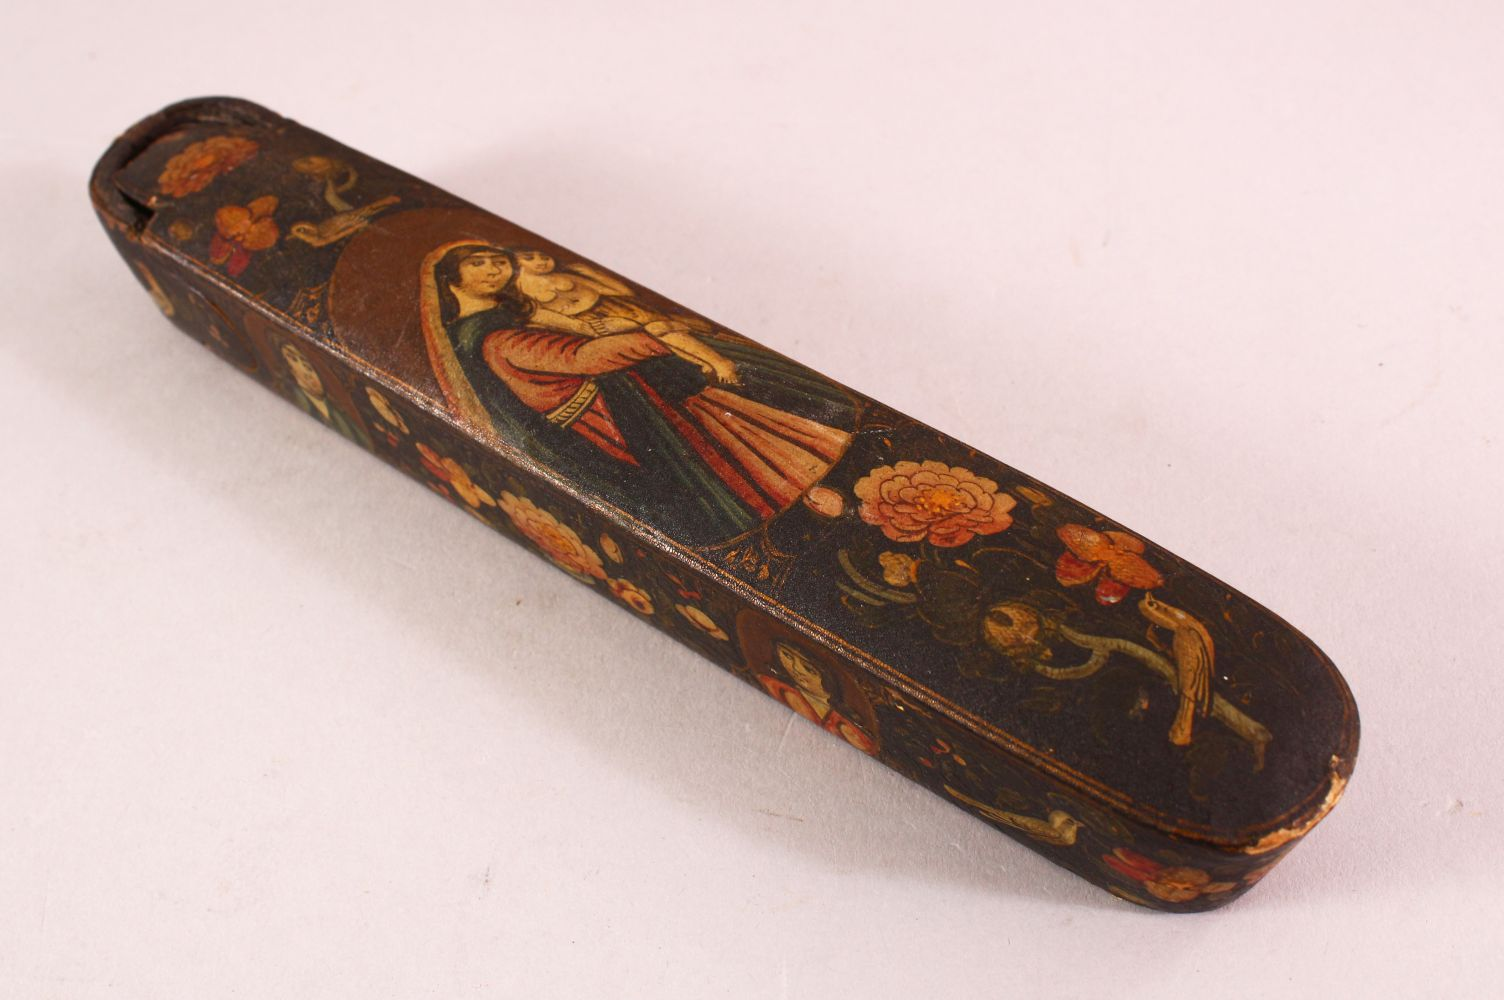 A PERSIAN QAJAR LACQUERED PEN BOX containing the brass inkwell, 23cm long.